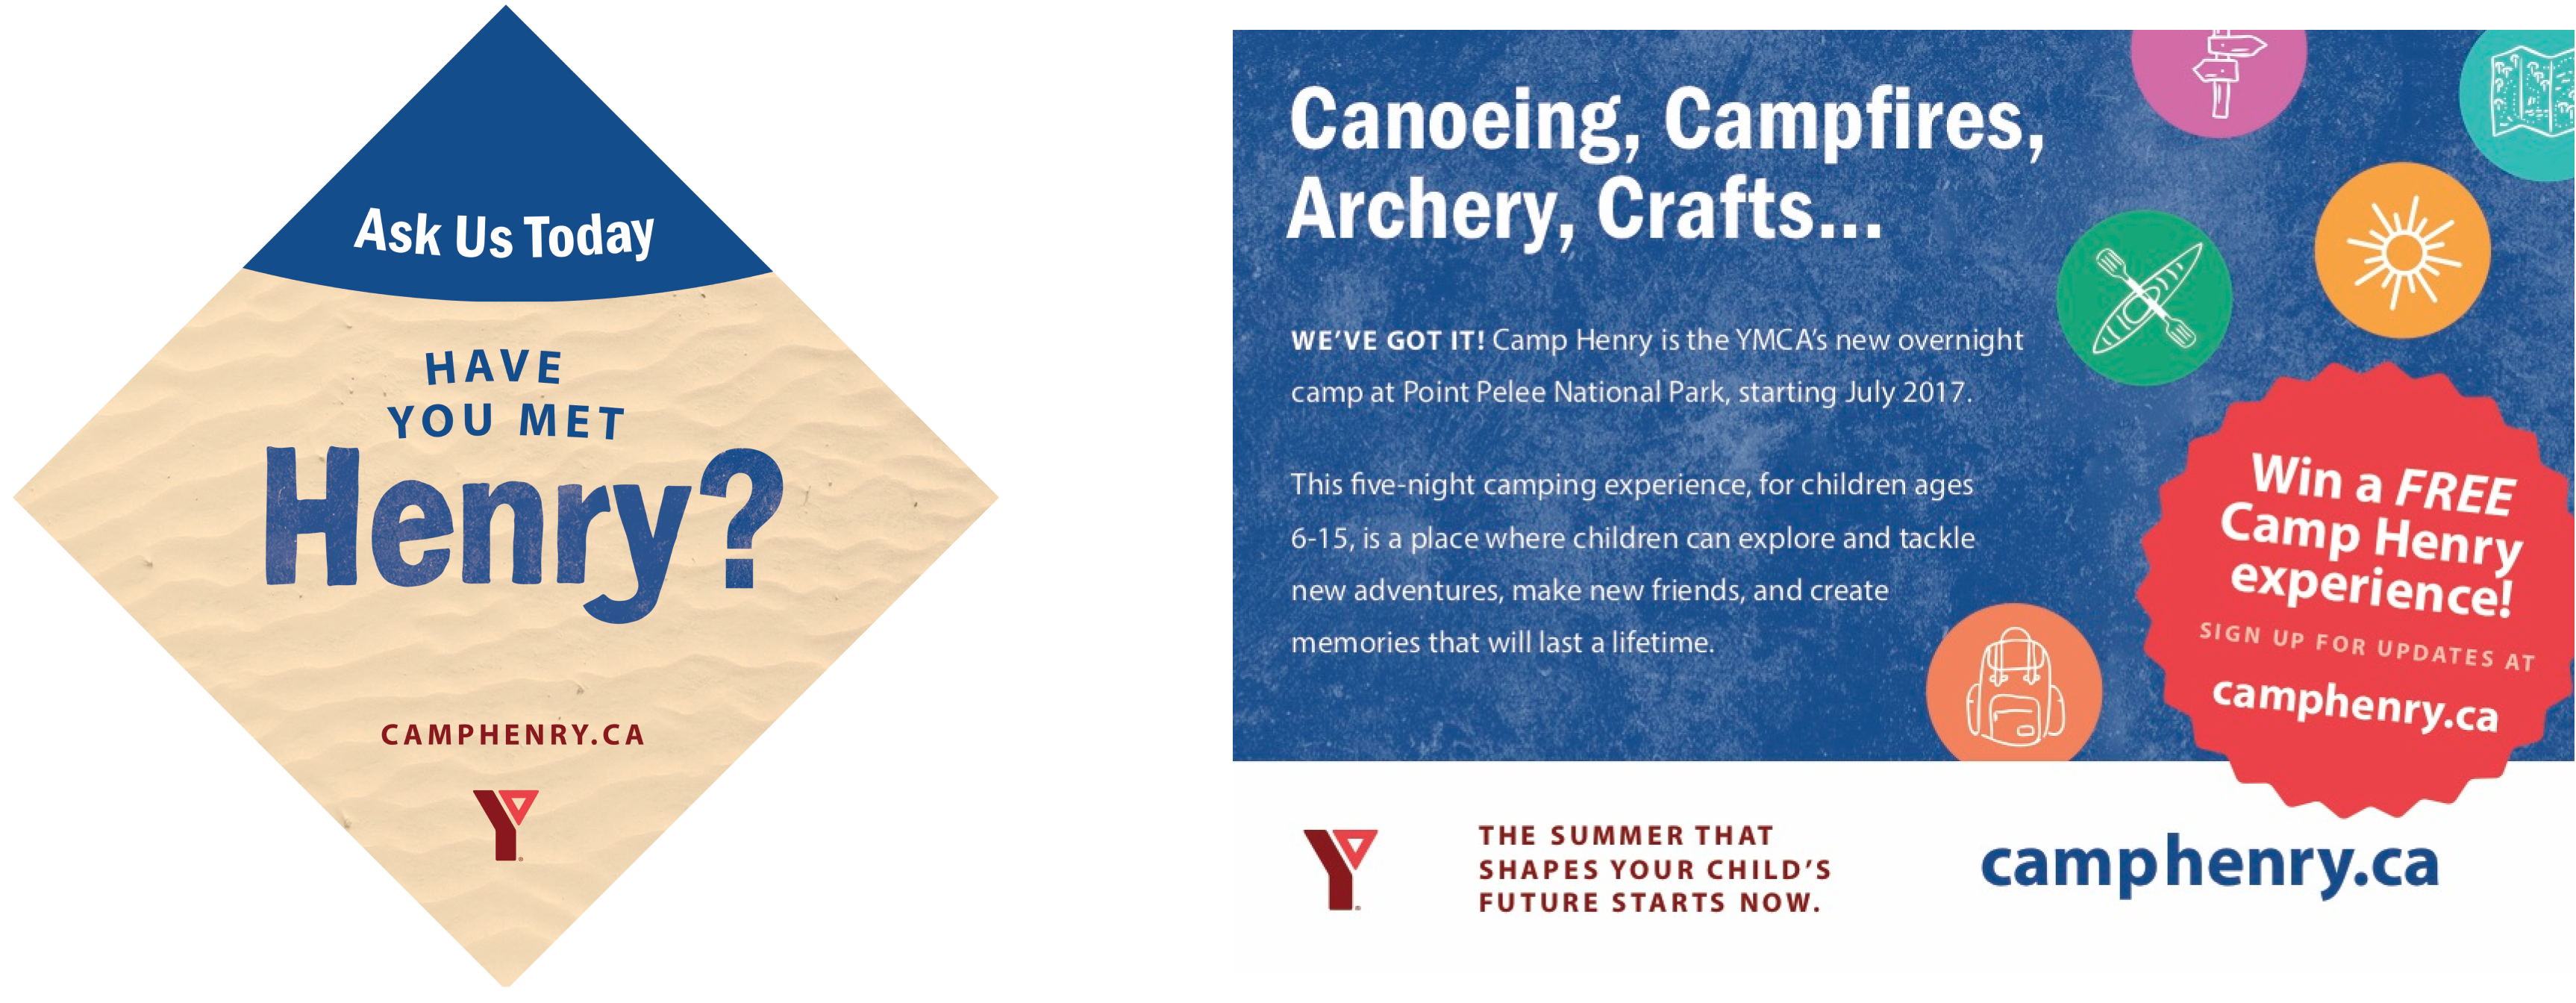 Promotional creative material promoting Camp Henry